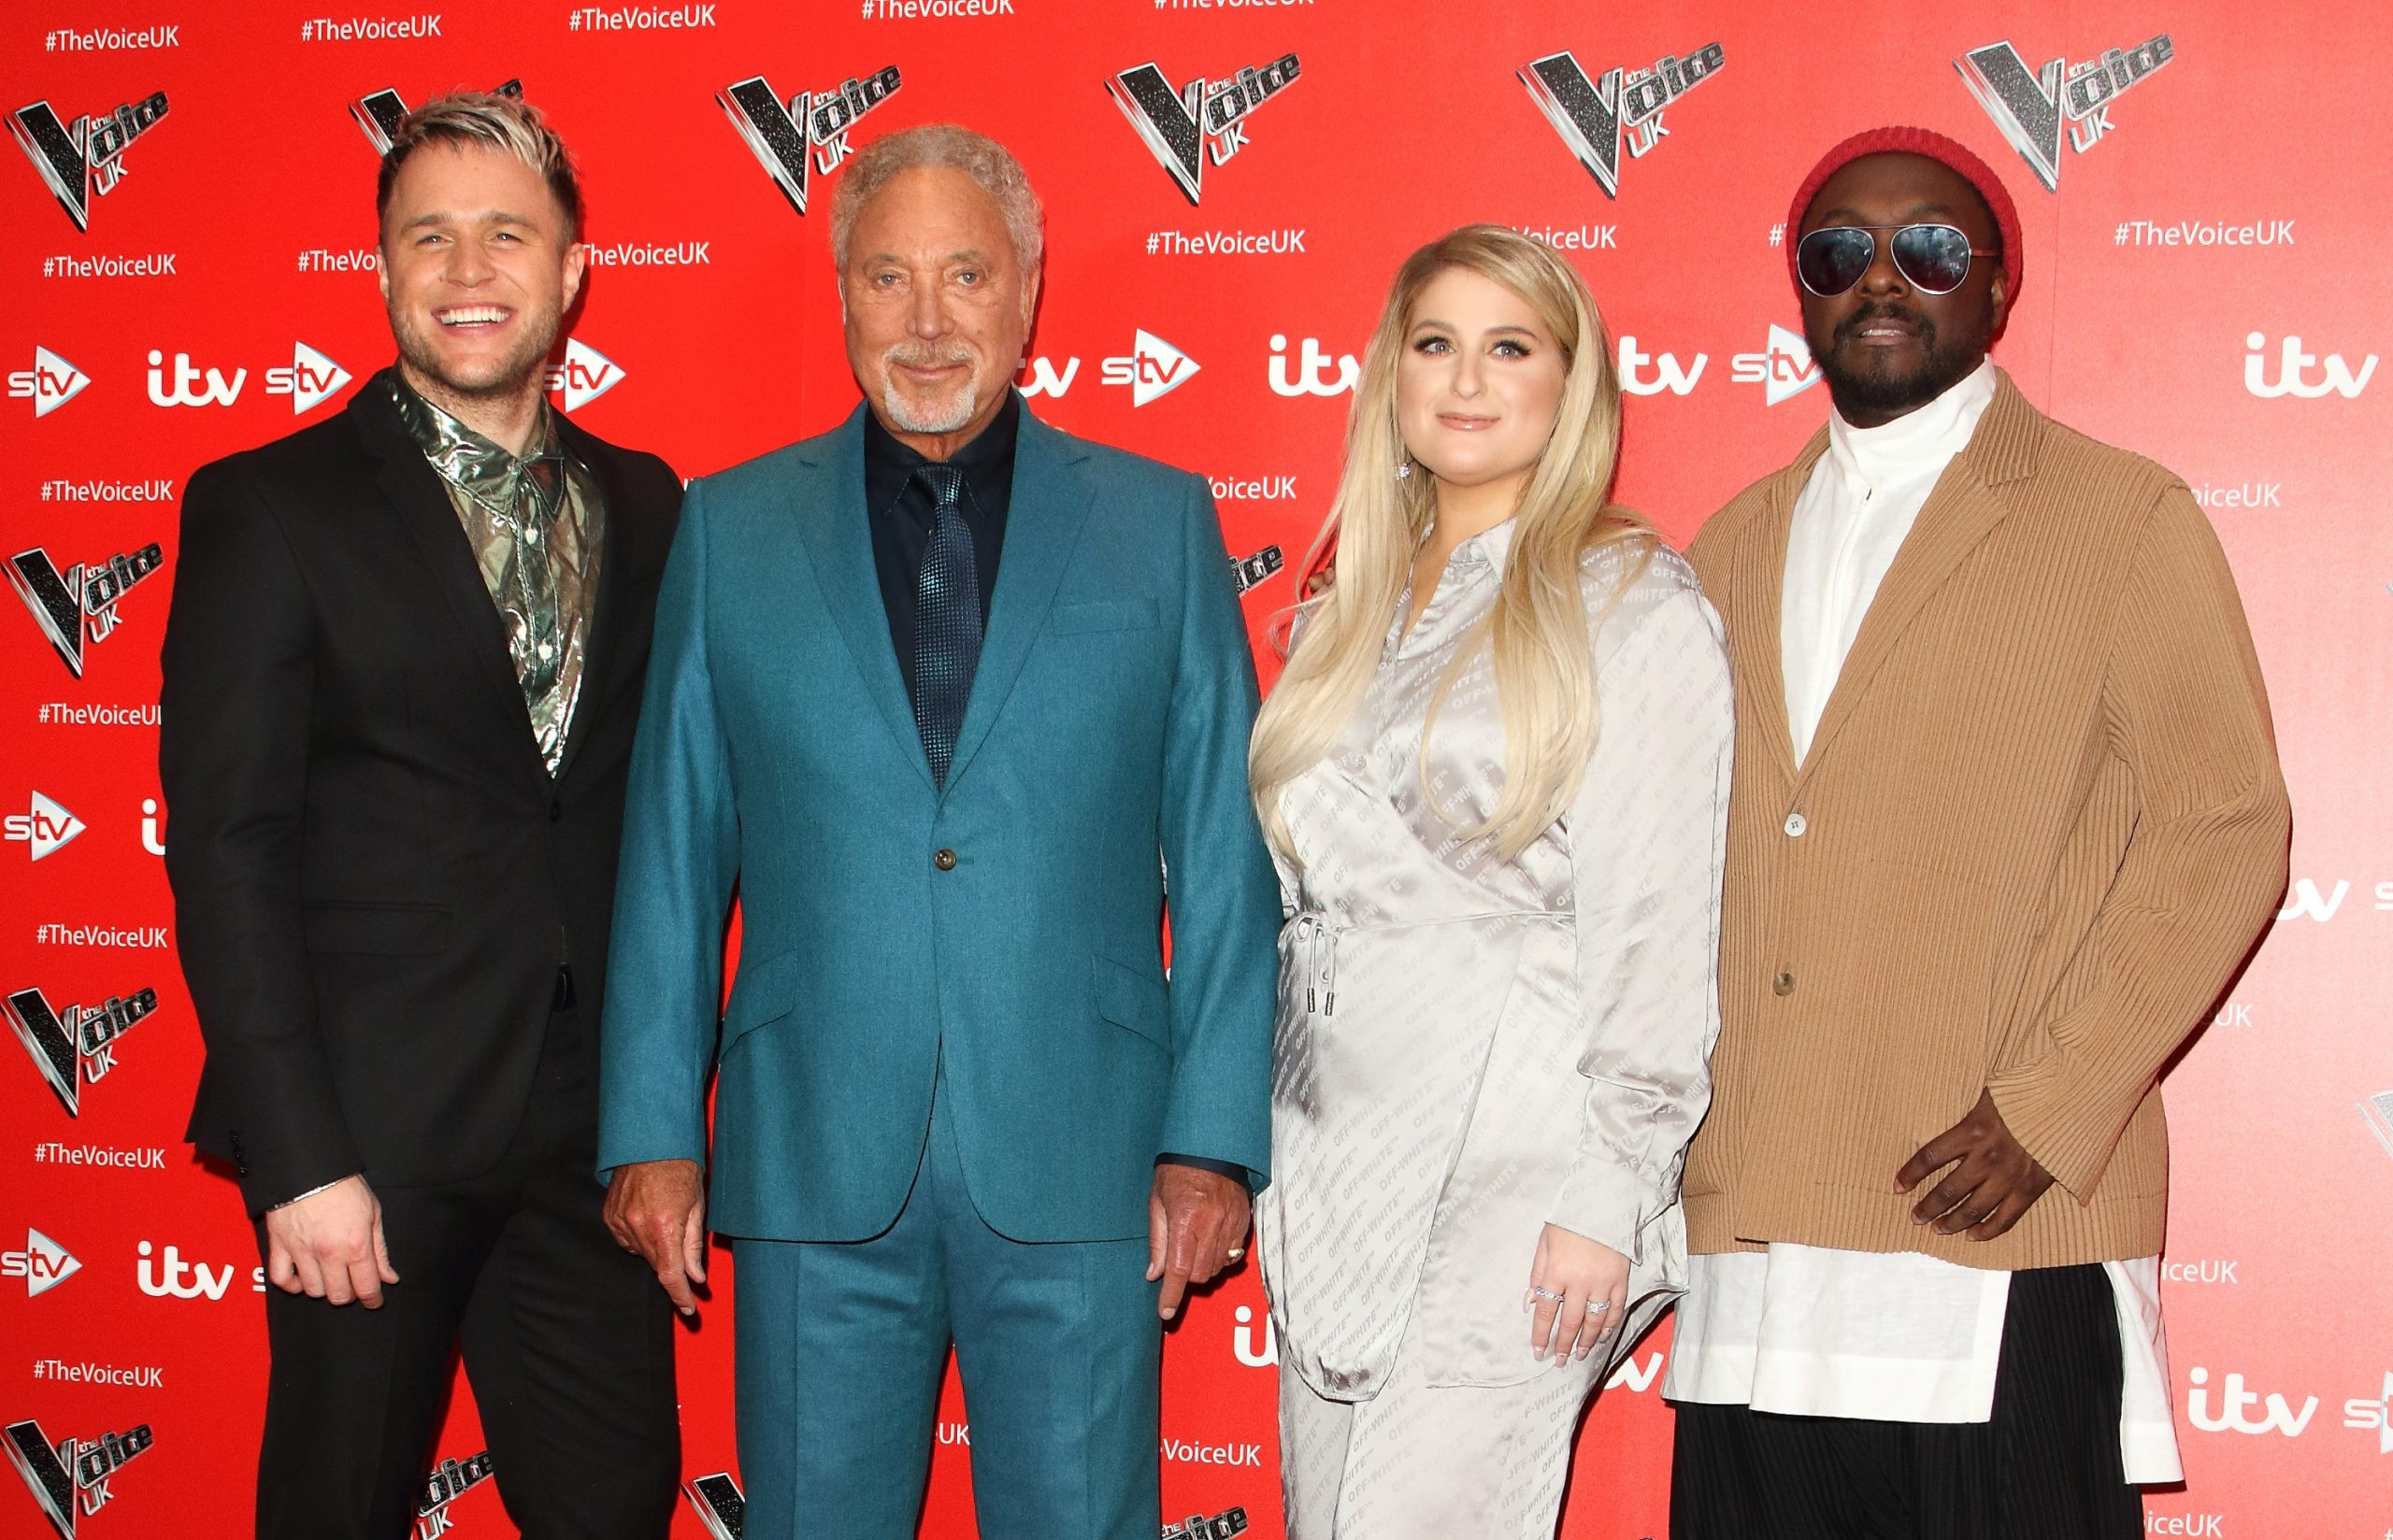 The Voice UK Series 9 launch in London, UK